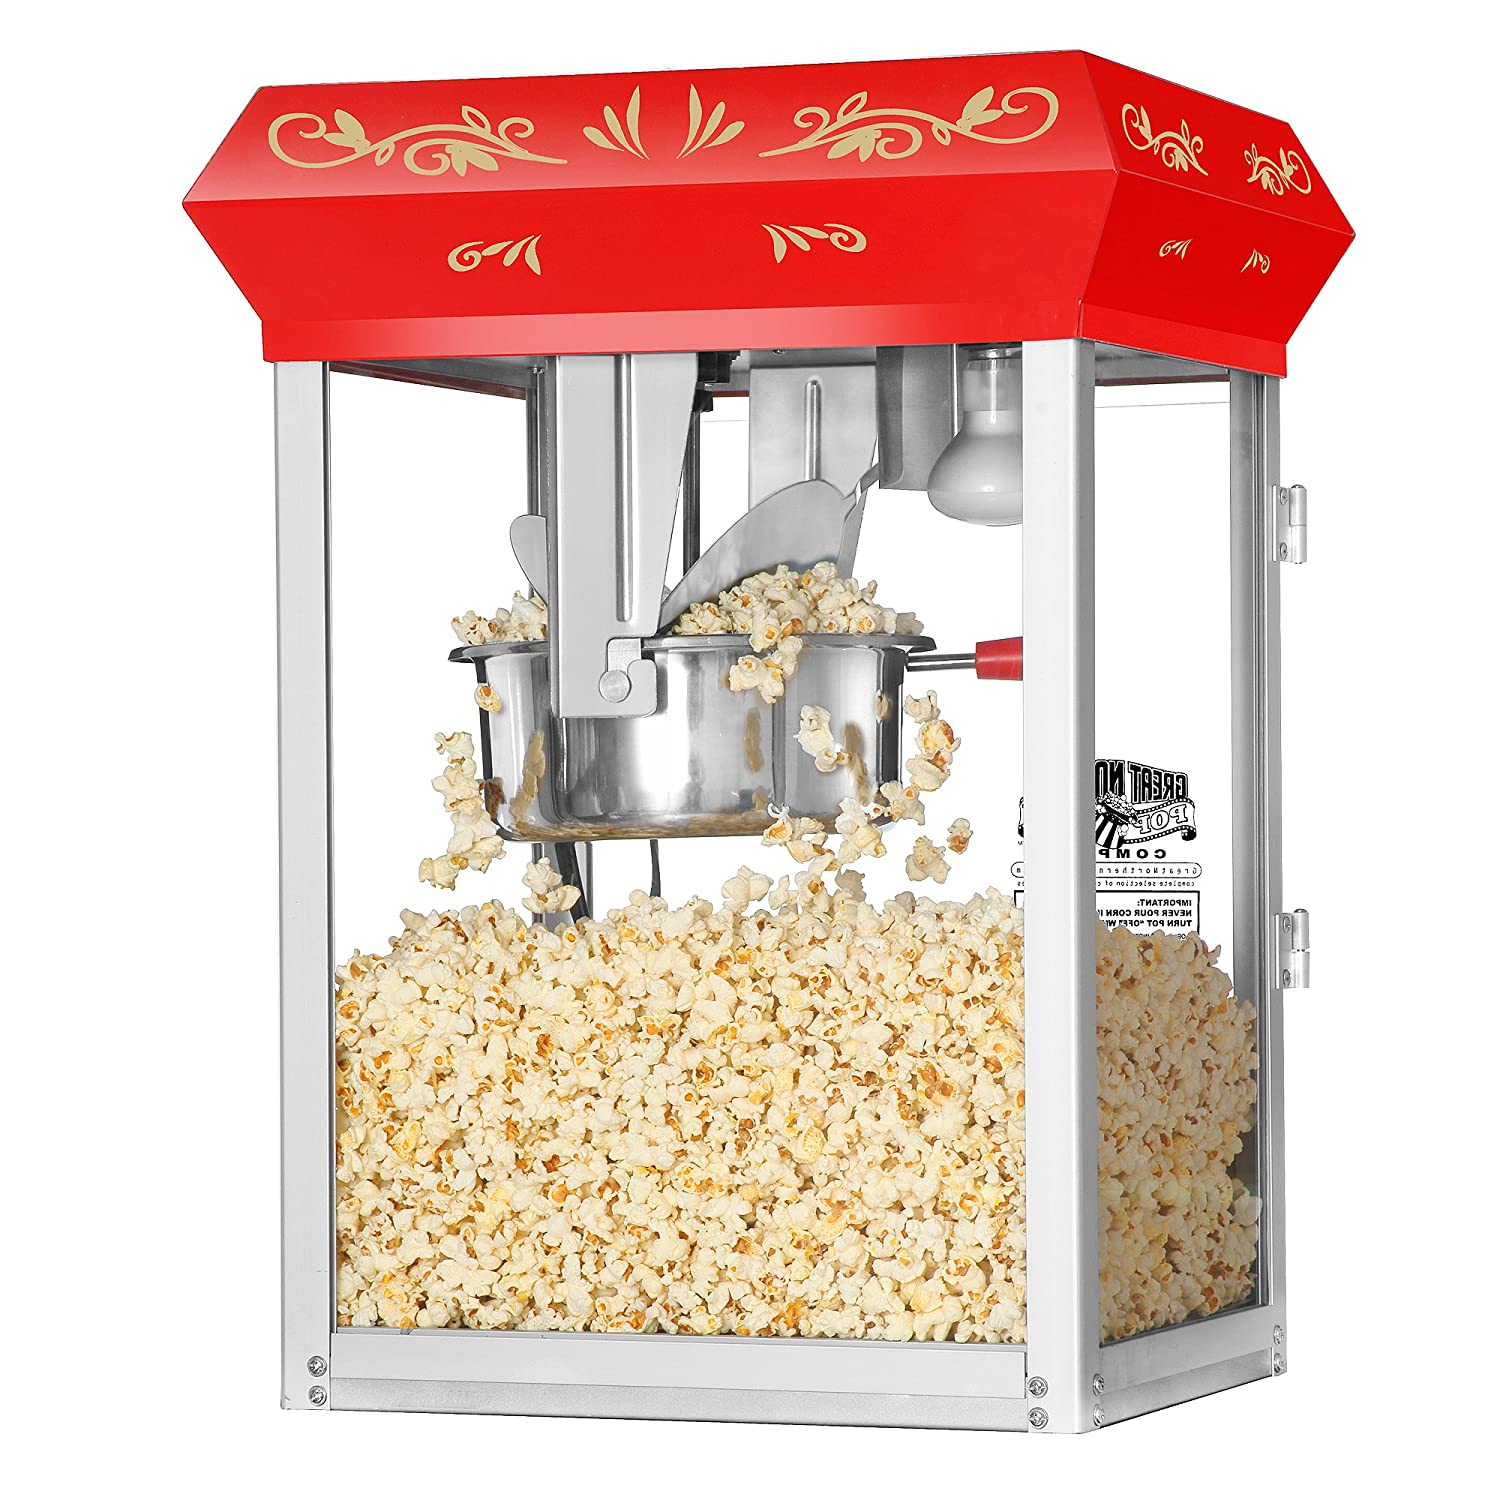 amazon com great northern popcorn 6100 8 ounce foundation red Dtx Gnp 40048 Wiring Schematic For Paducah Popper amazon com great northern popcorn 6100 8 ounce foundation red antique style popcorn popper machine electric popcorn poppers kitchen & dining